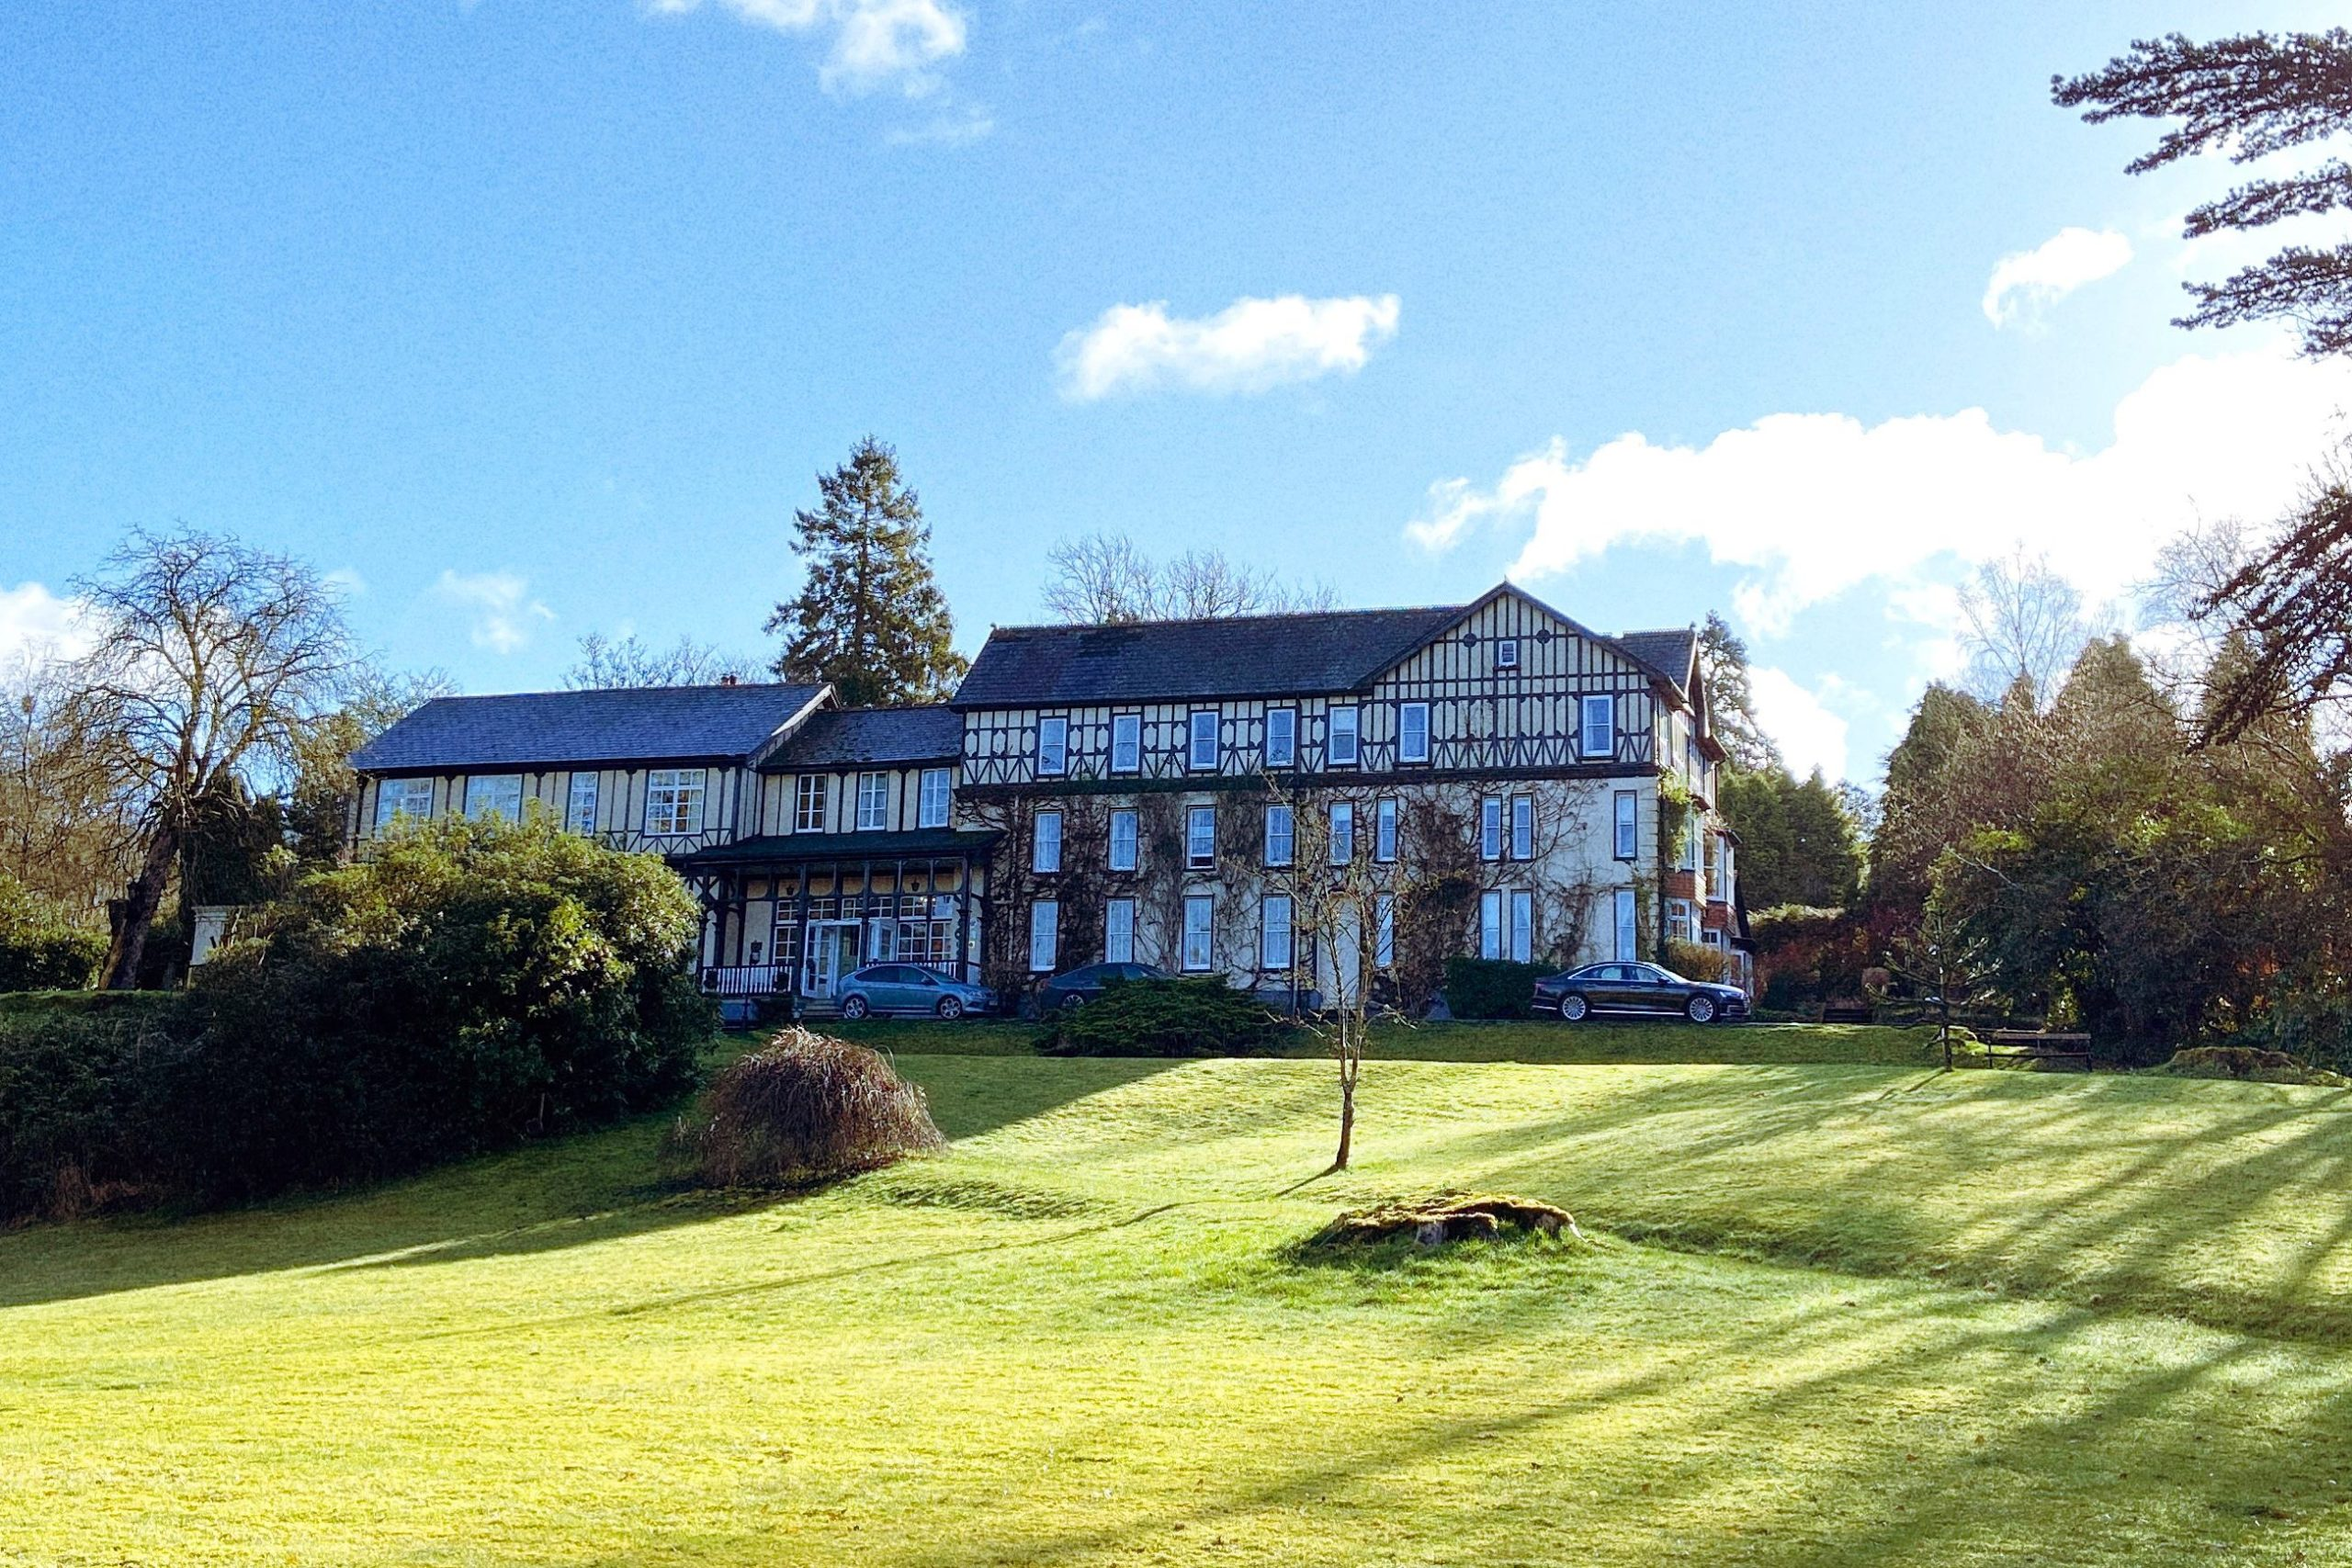 Lake Country House Hotel